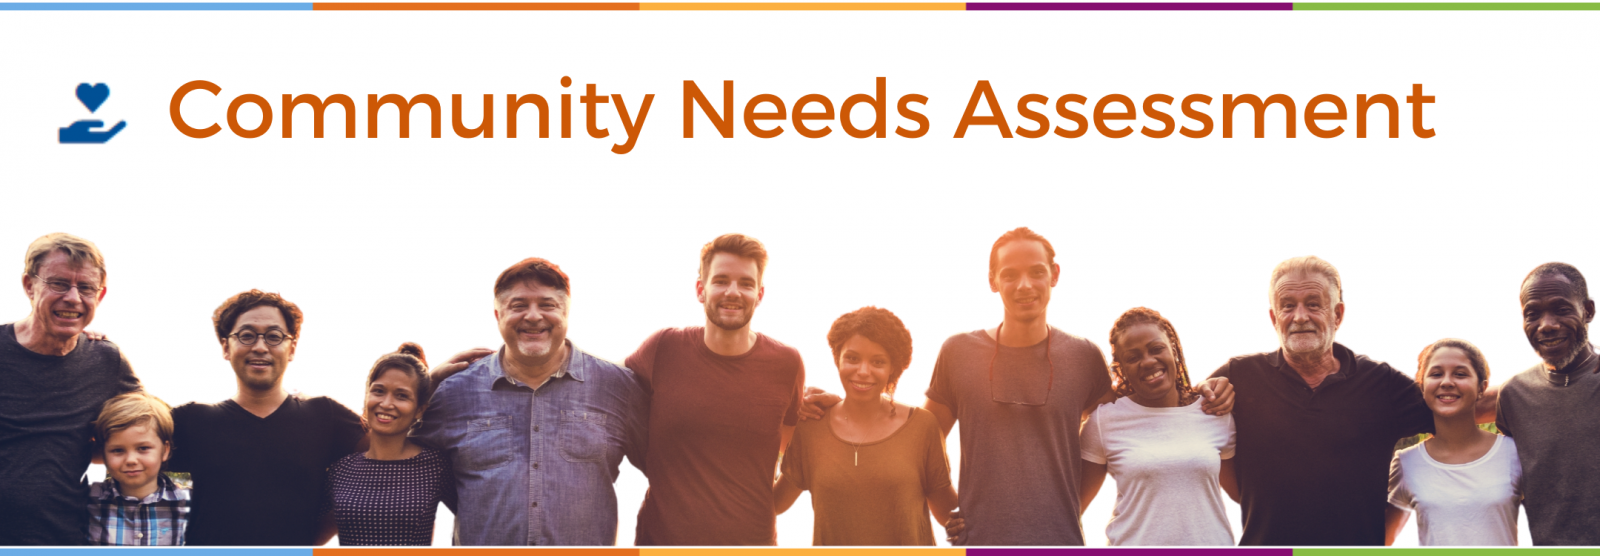 Copy of Community Needs Assessment - Website